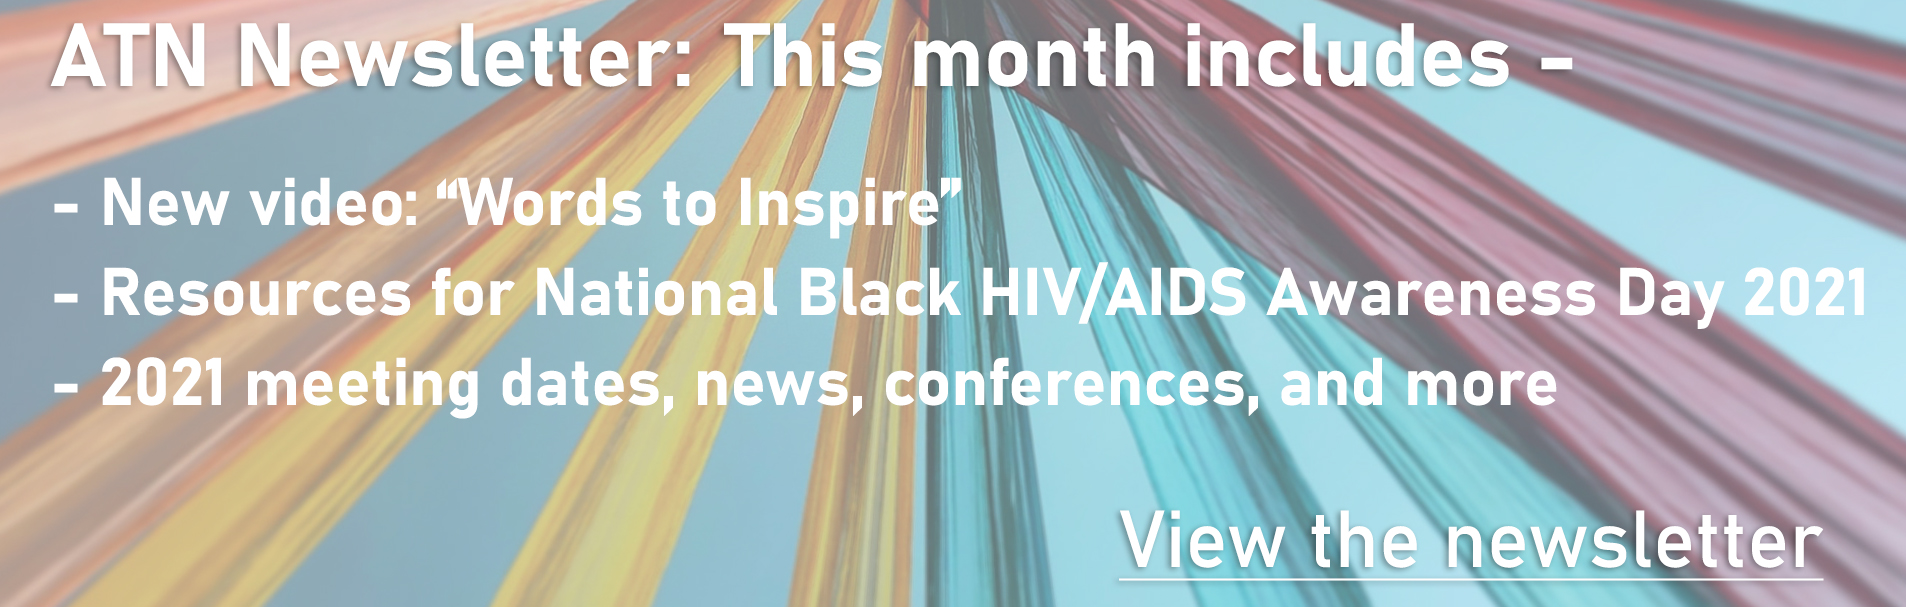 "ATN Newsletter: This month includes - New video: ""Words to Inspire"" - Resources for National Black HIV/AIDS Awareness Day 2021 - 2021 meeting dates, news, conferences, and more. View the Newsletter"